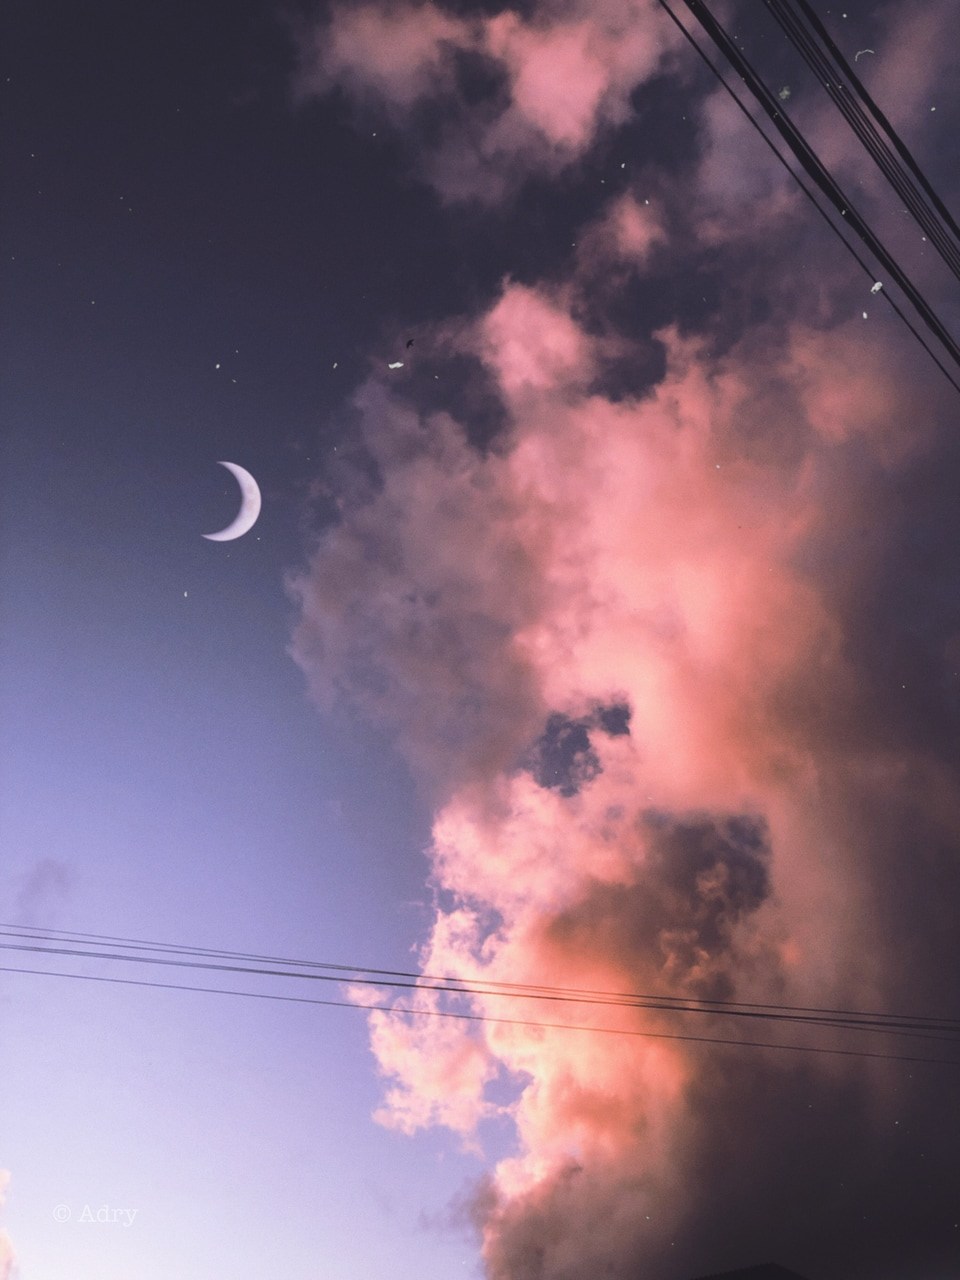 autoral, moon, ideas and inspiration